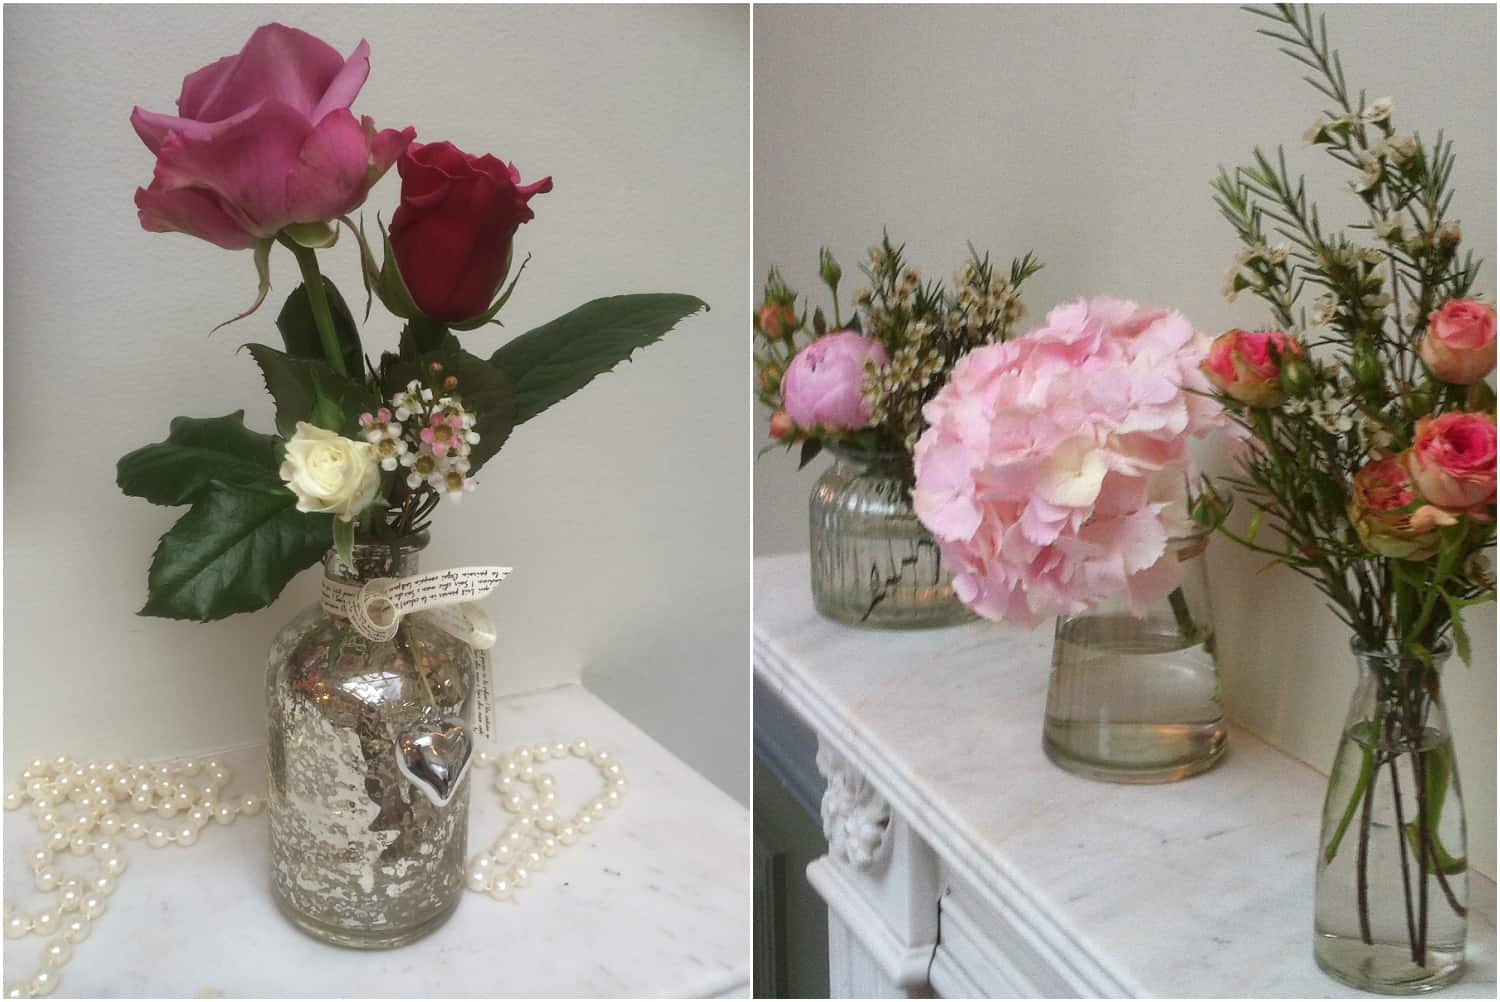 Small vases and jugs for more intimate decorations. By Sarah Pepper